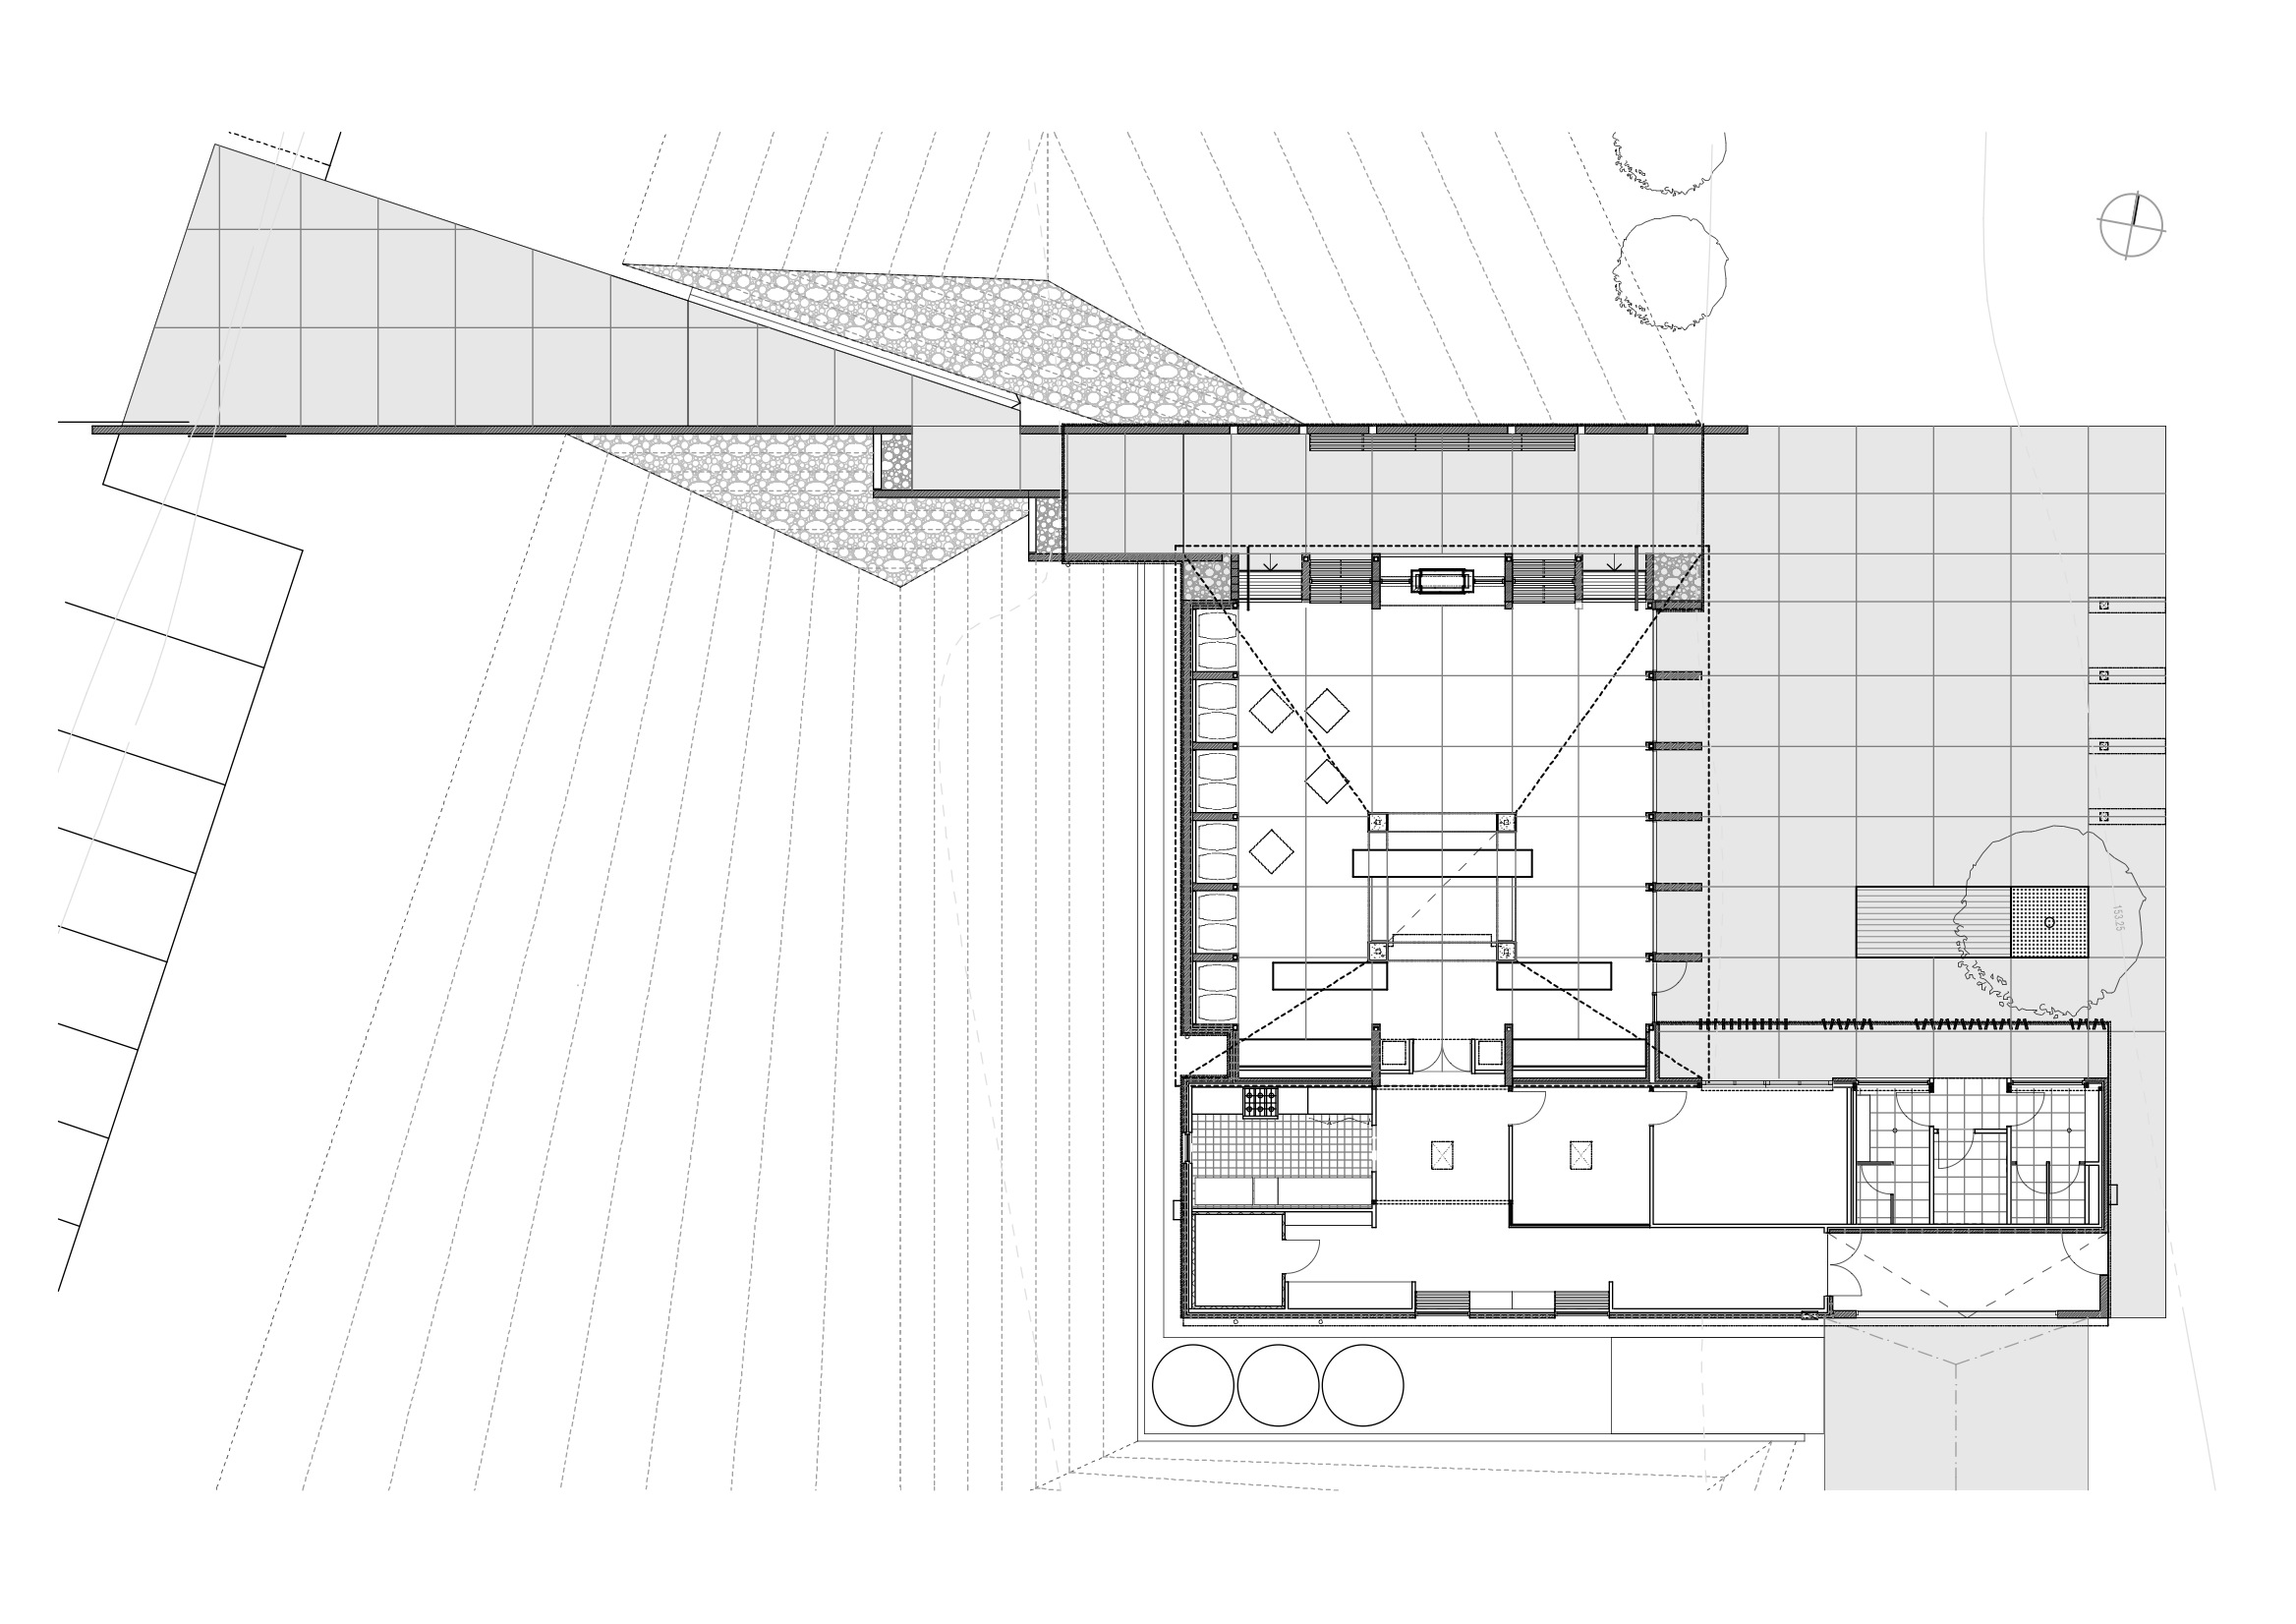 Architecture photography floor plan 119044 for Winery floor plans by architects